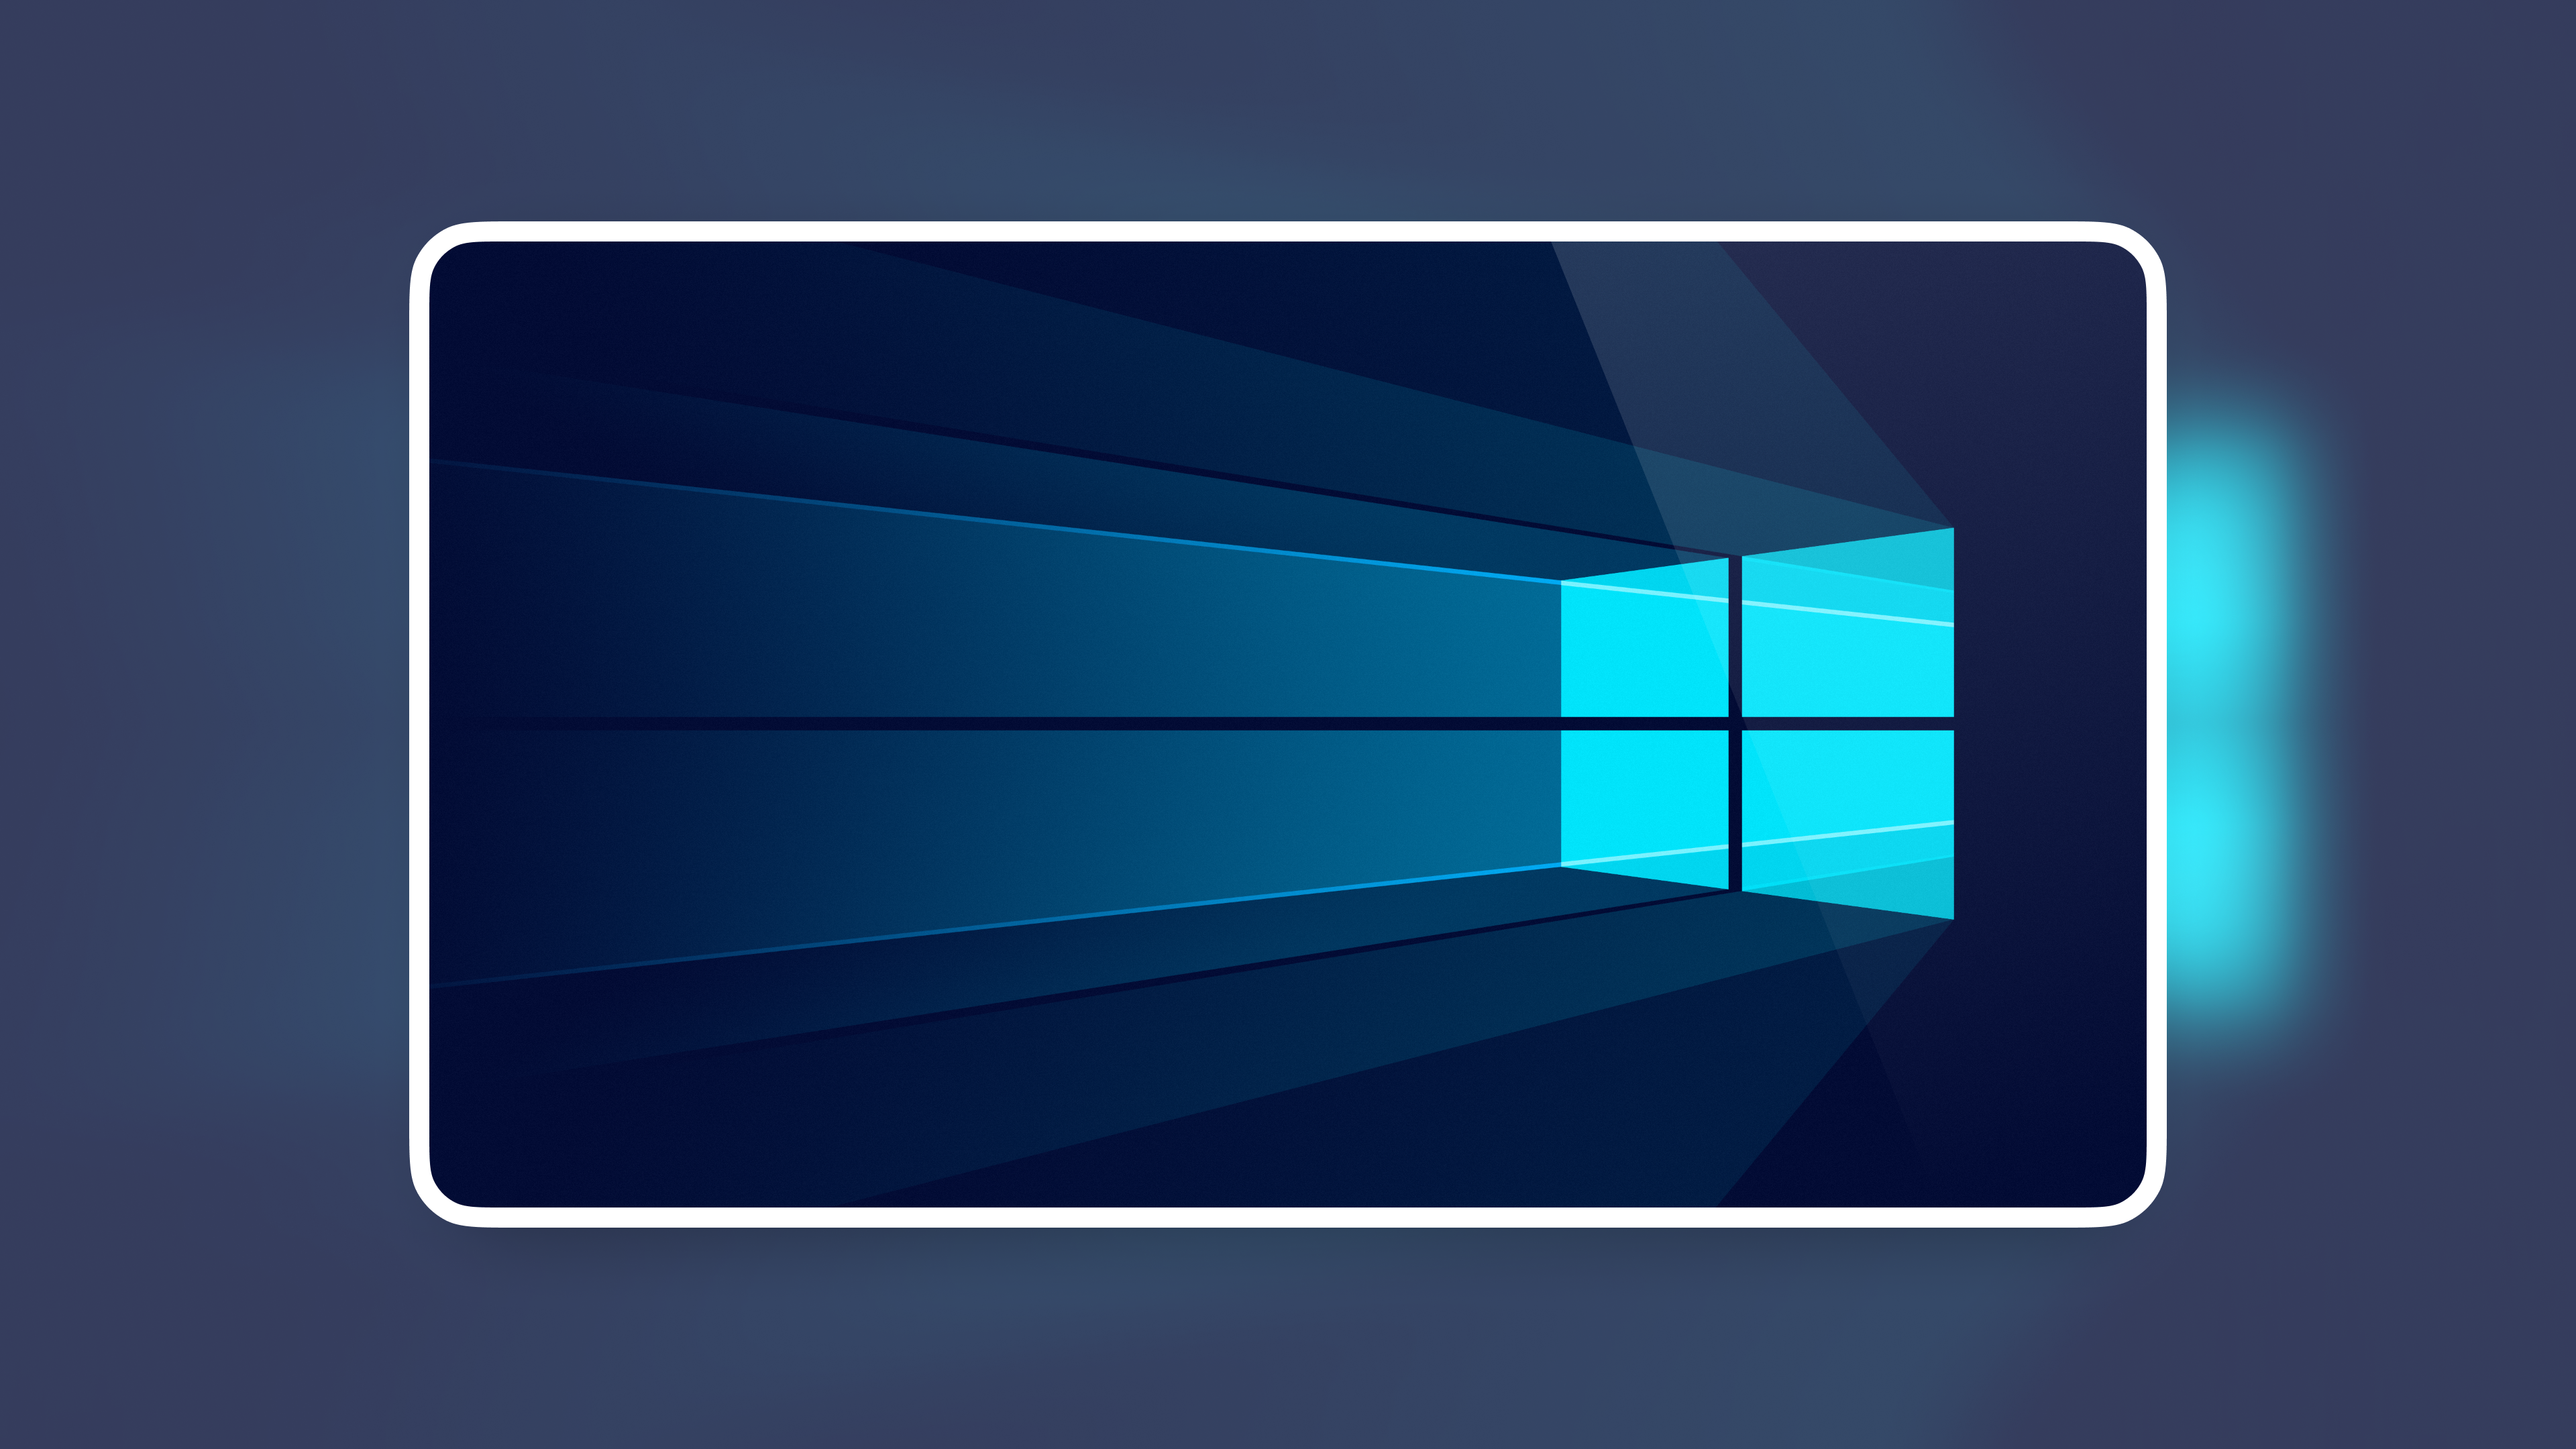 Windows 10 Wallpaper Minimal 4k By Puscifer91 On Deviantart